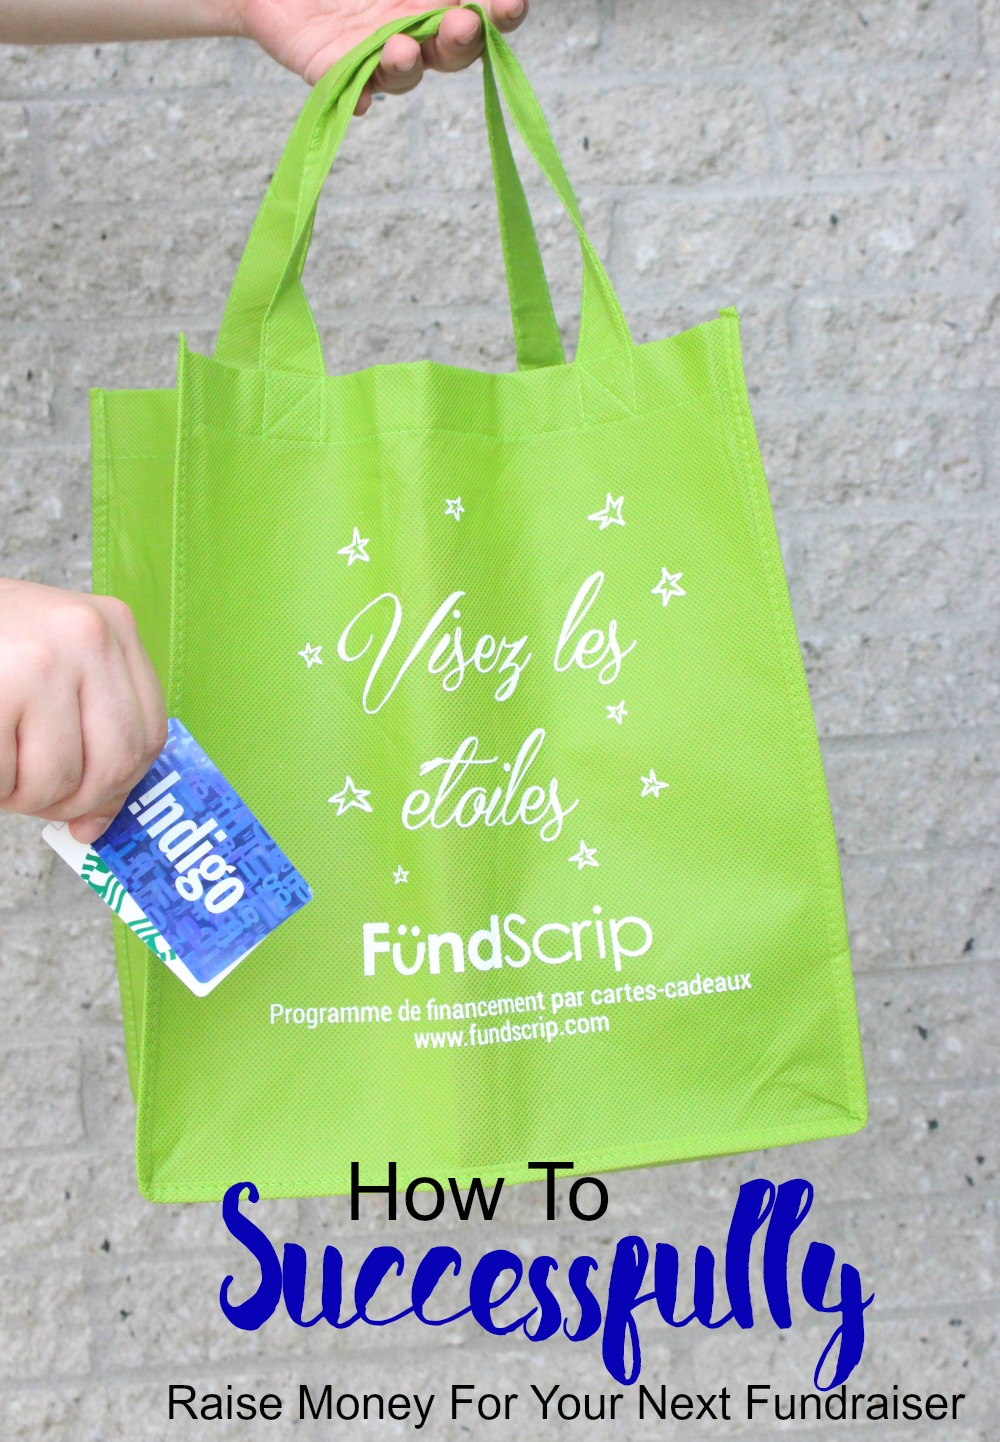 How To Successfully Raise Money For Your Next Fundraiser